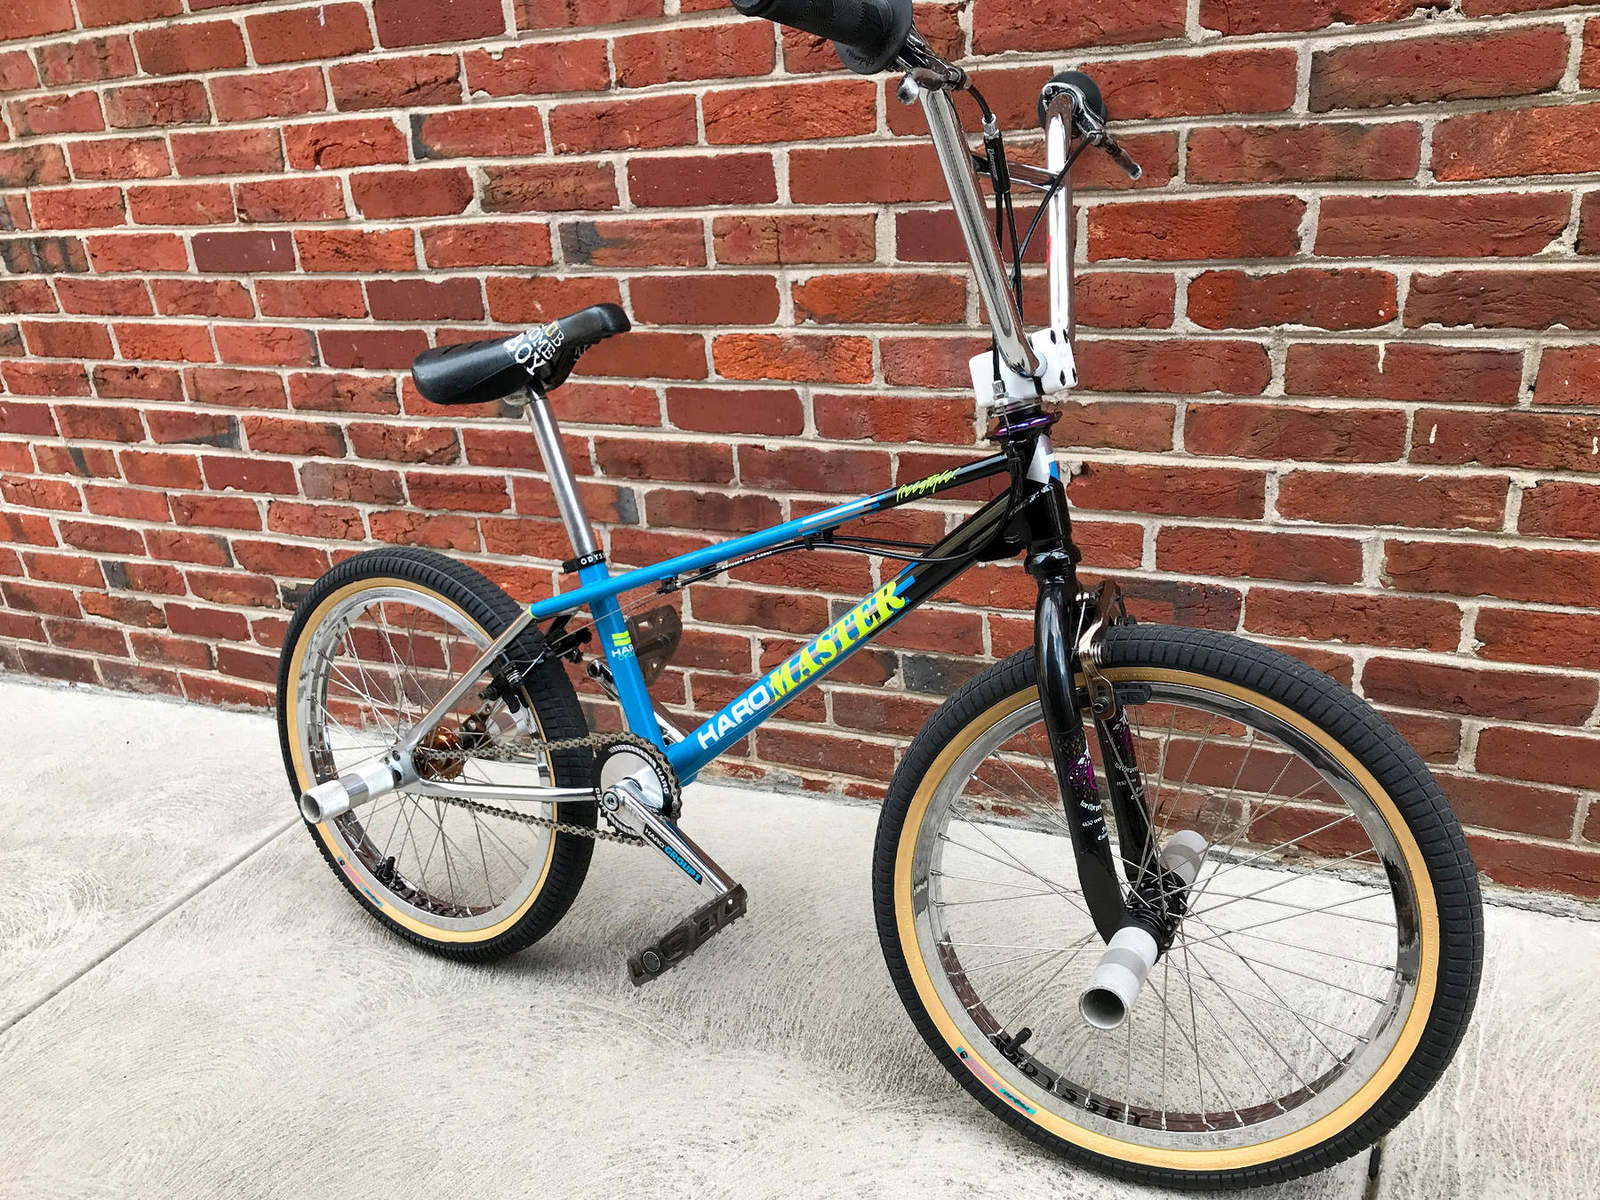 http://uploads.bmxmuseum.com/user-images/79740/haro-master-flat_035accdbcc29_blowup5cba8cd442.jpg